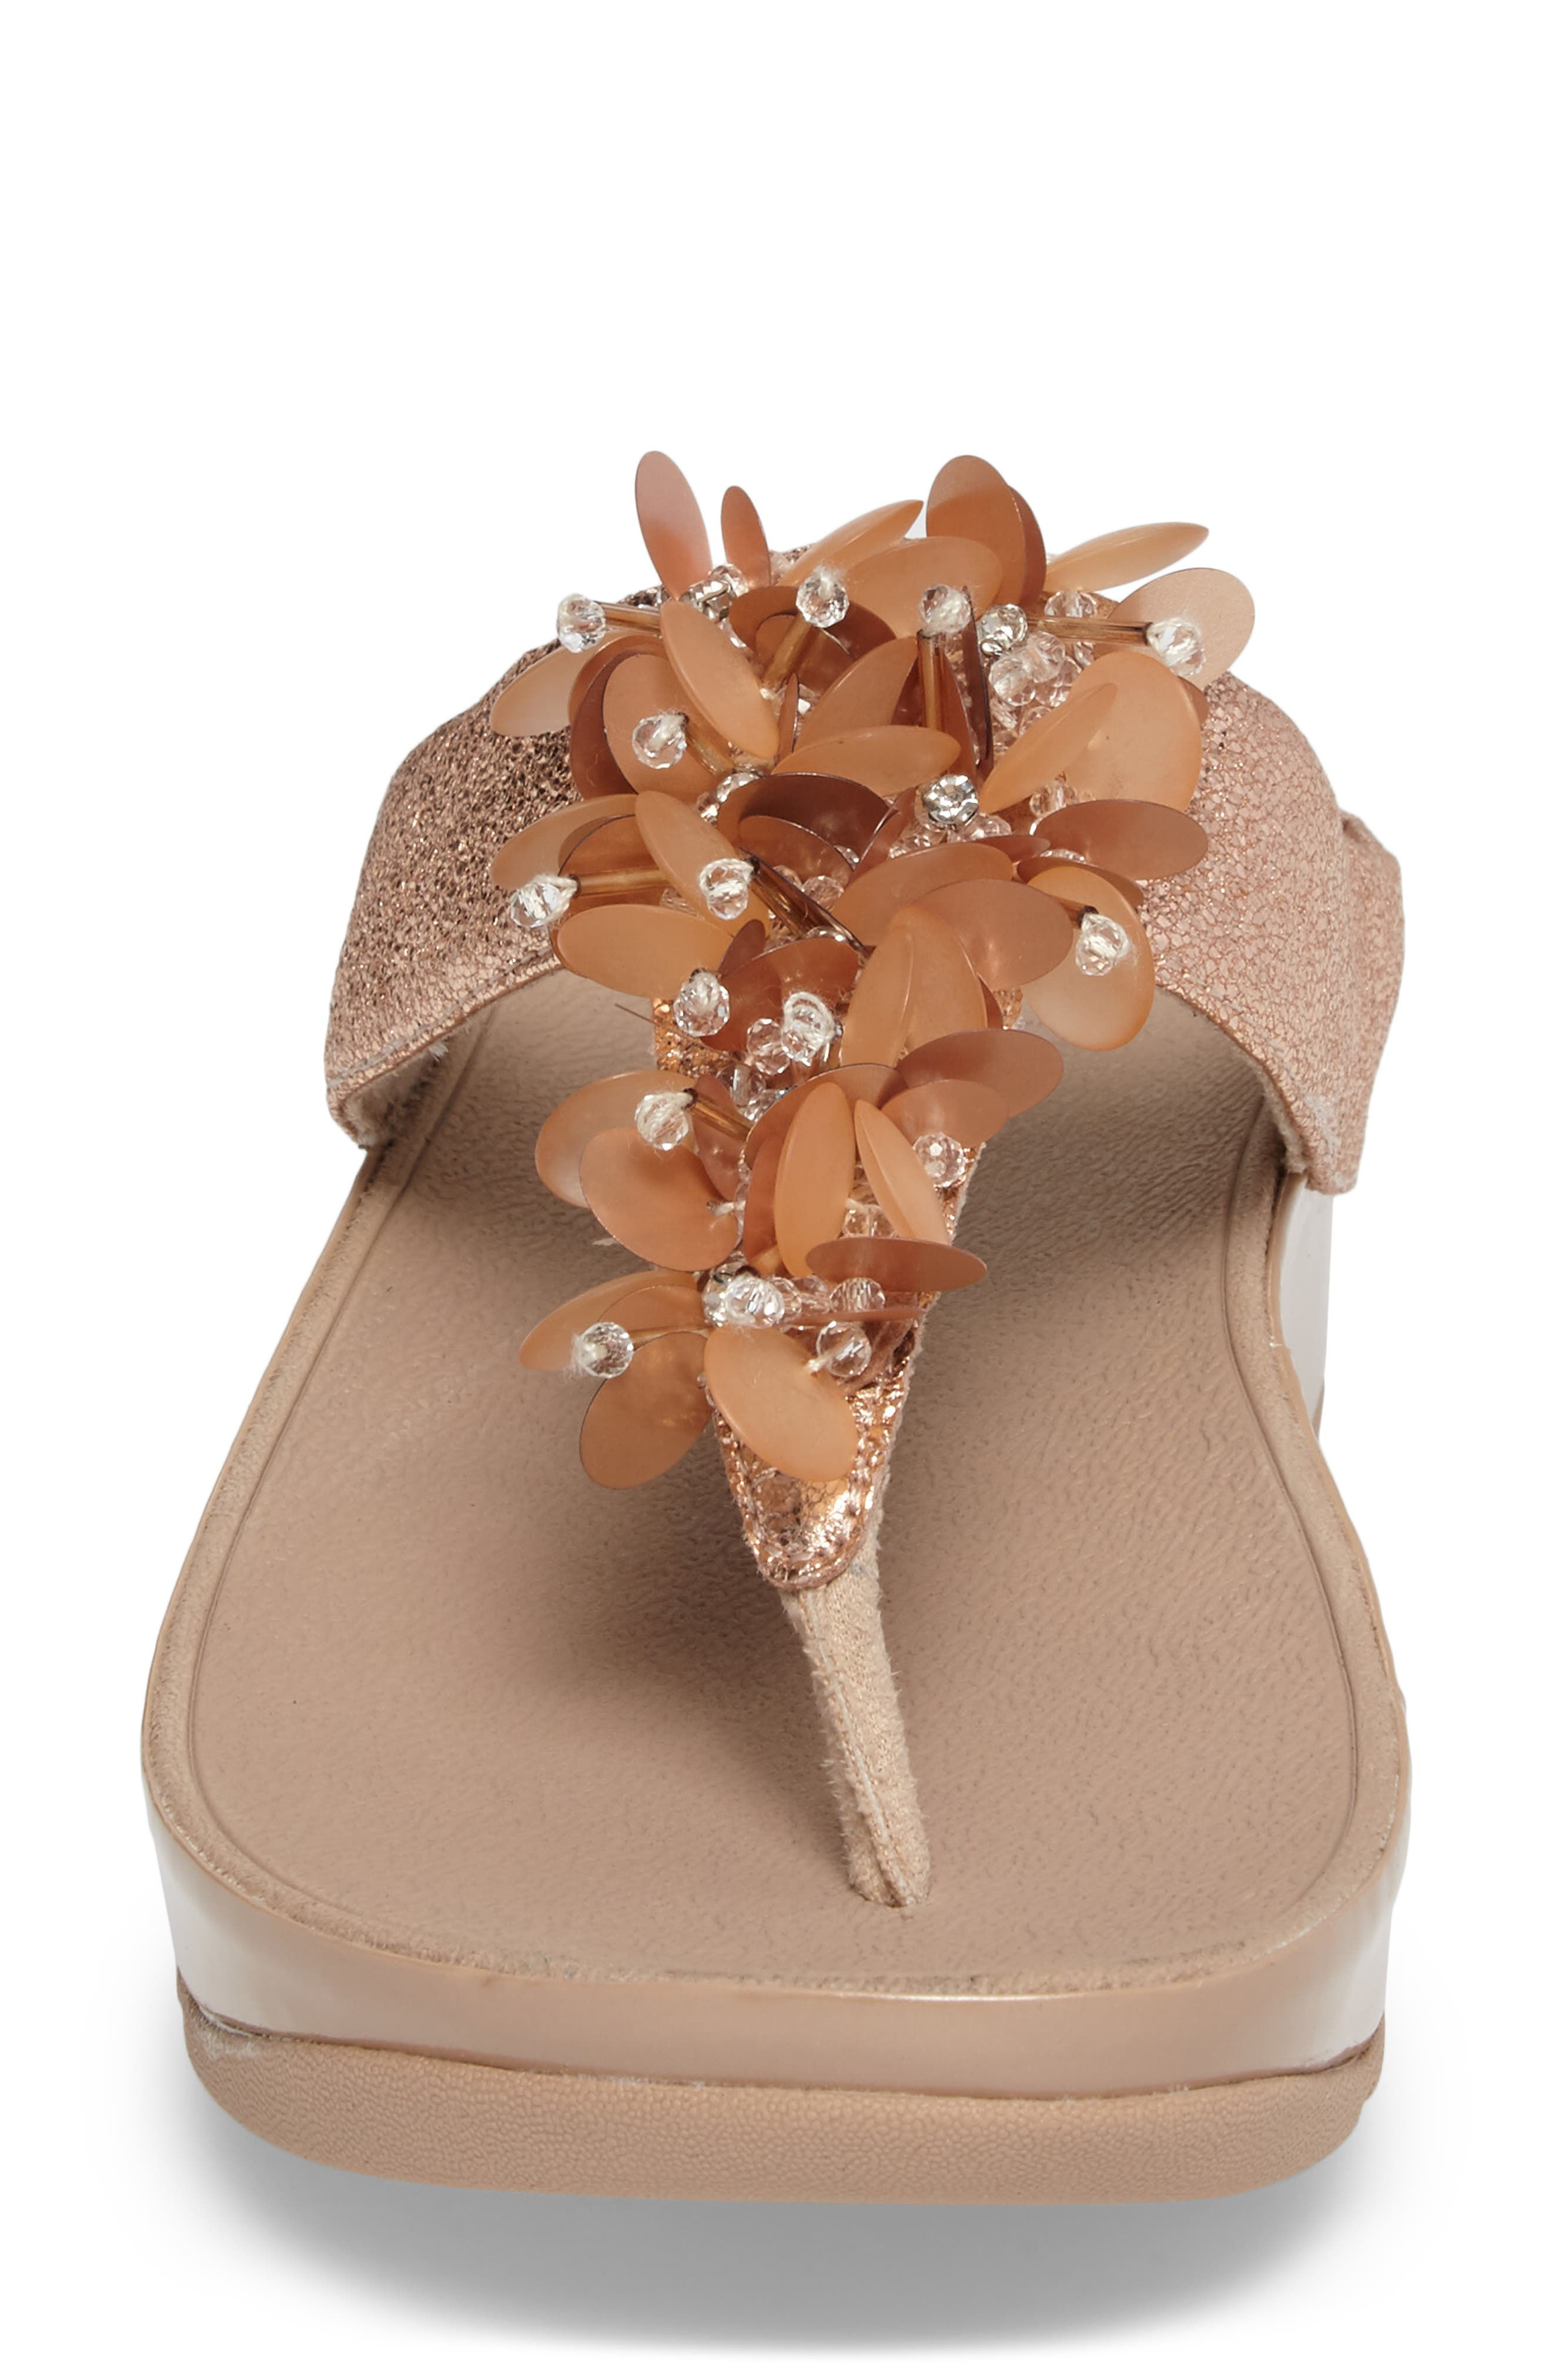 Boogaloo Sandal,                             Alternate thumbnail 4, color,                             Rose Gold Leather